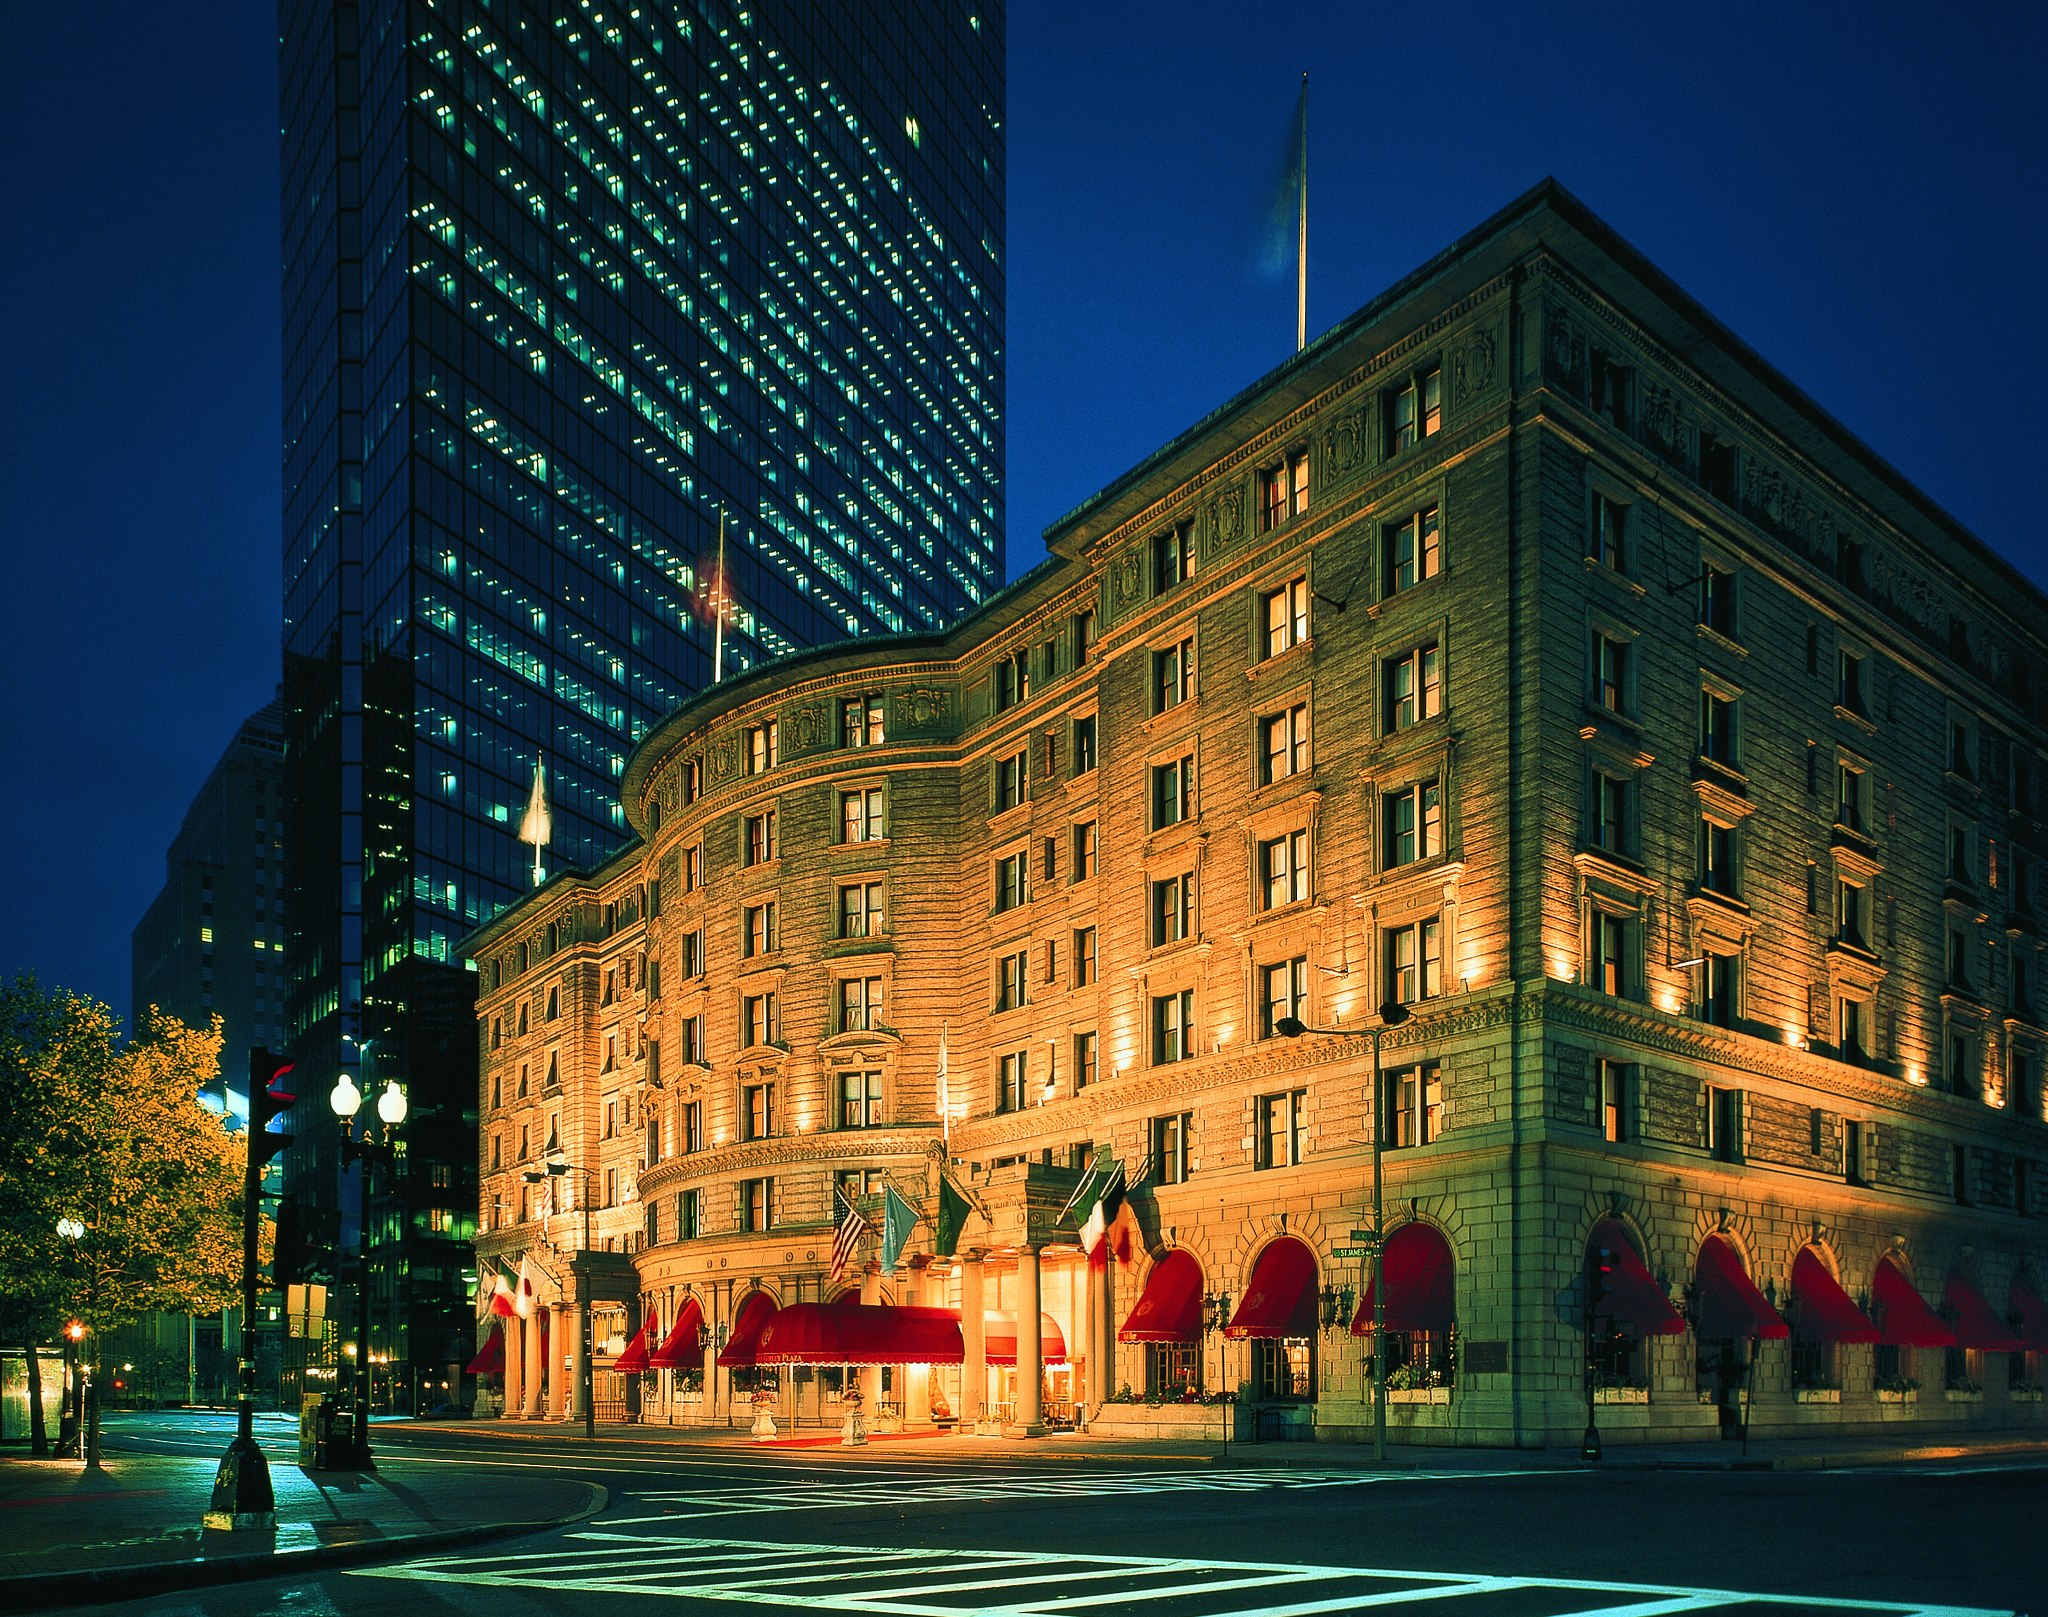 Night time photo of the Fairmont Copley Hotel